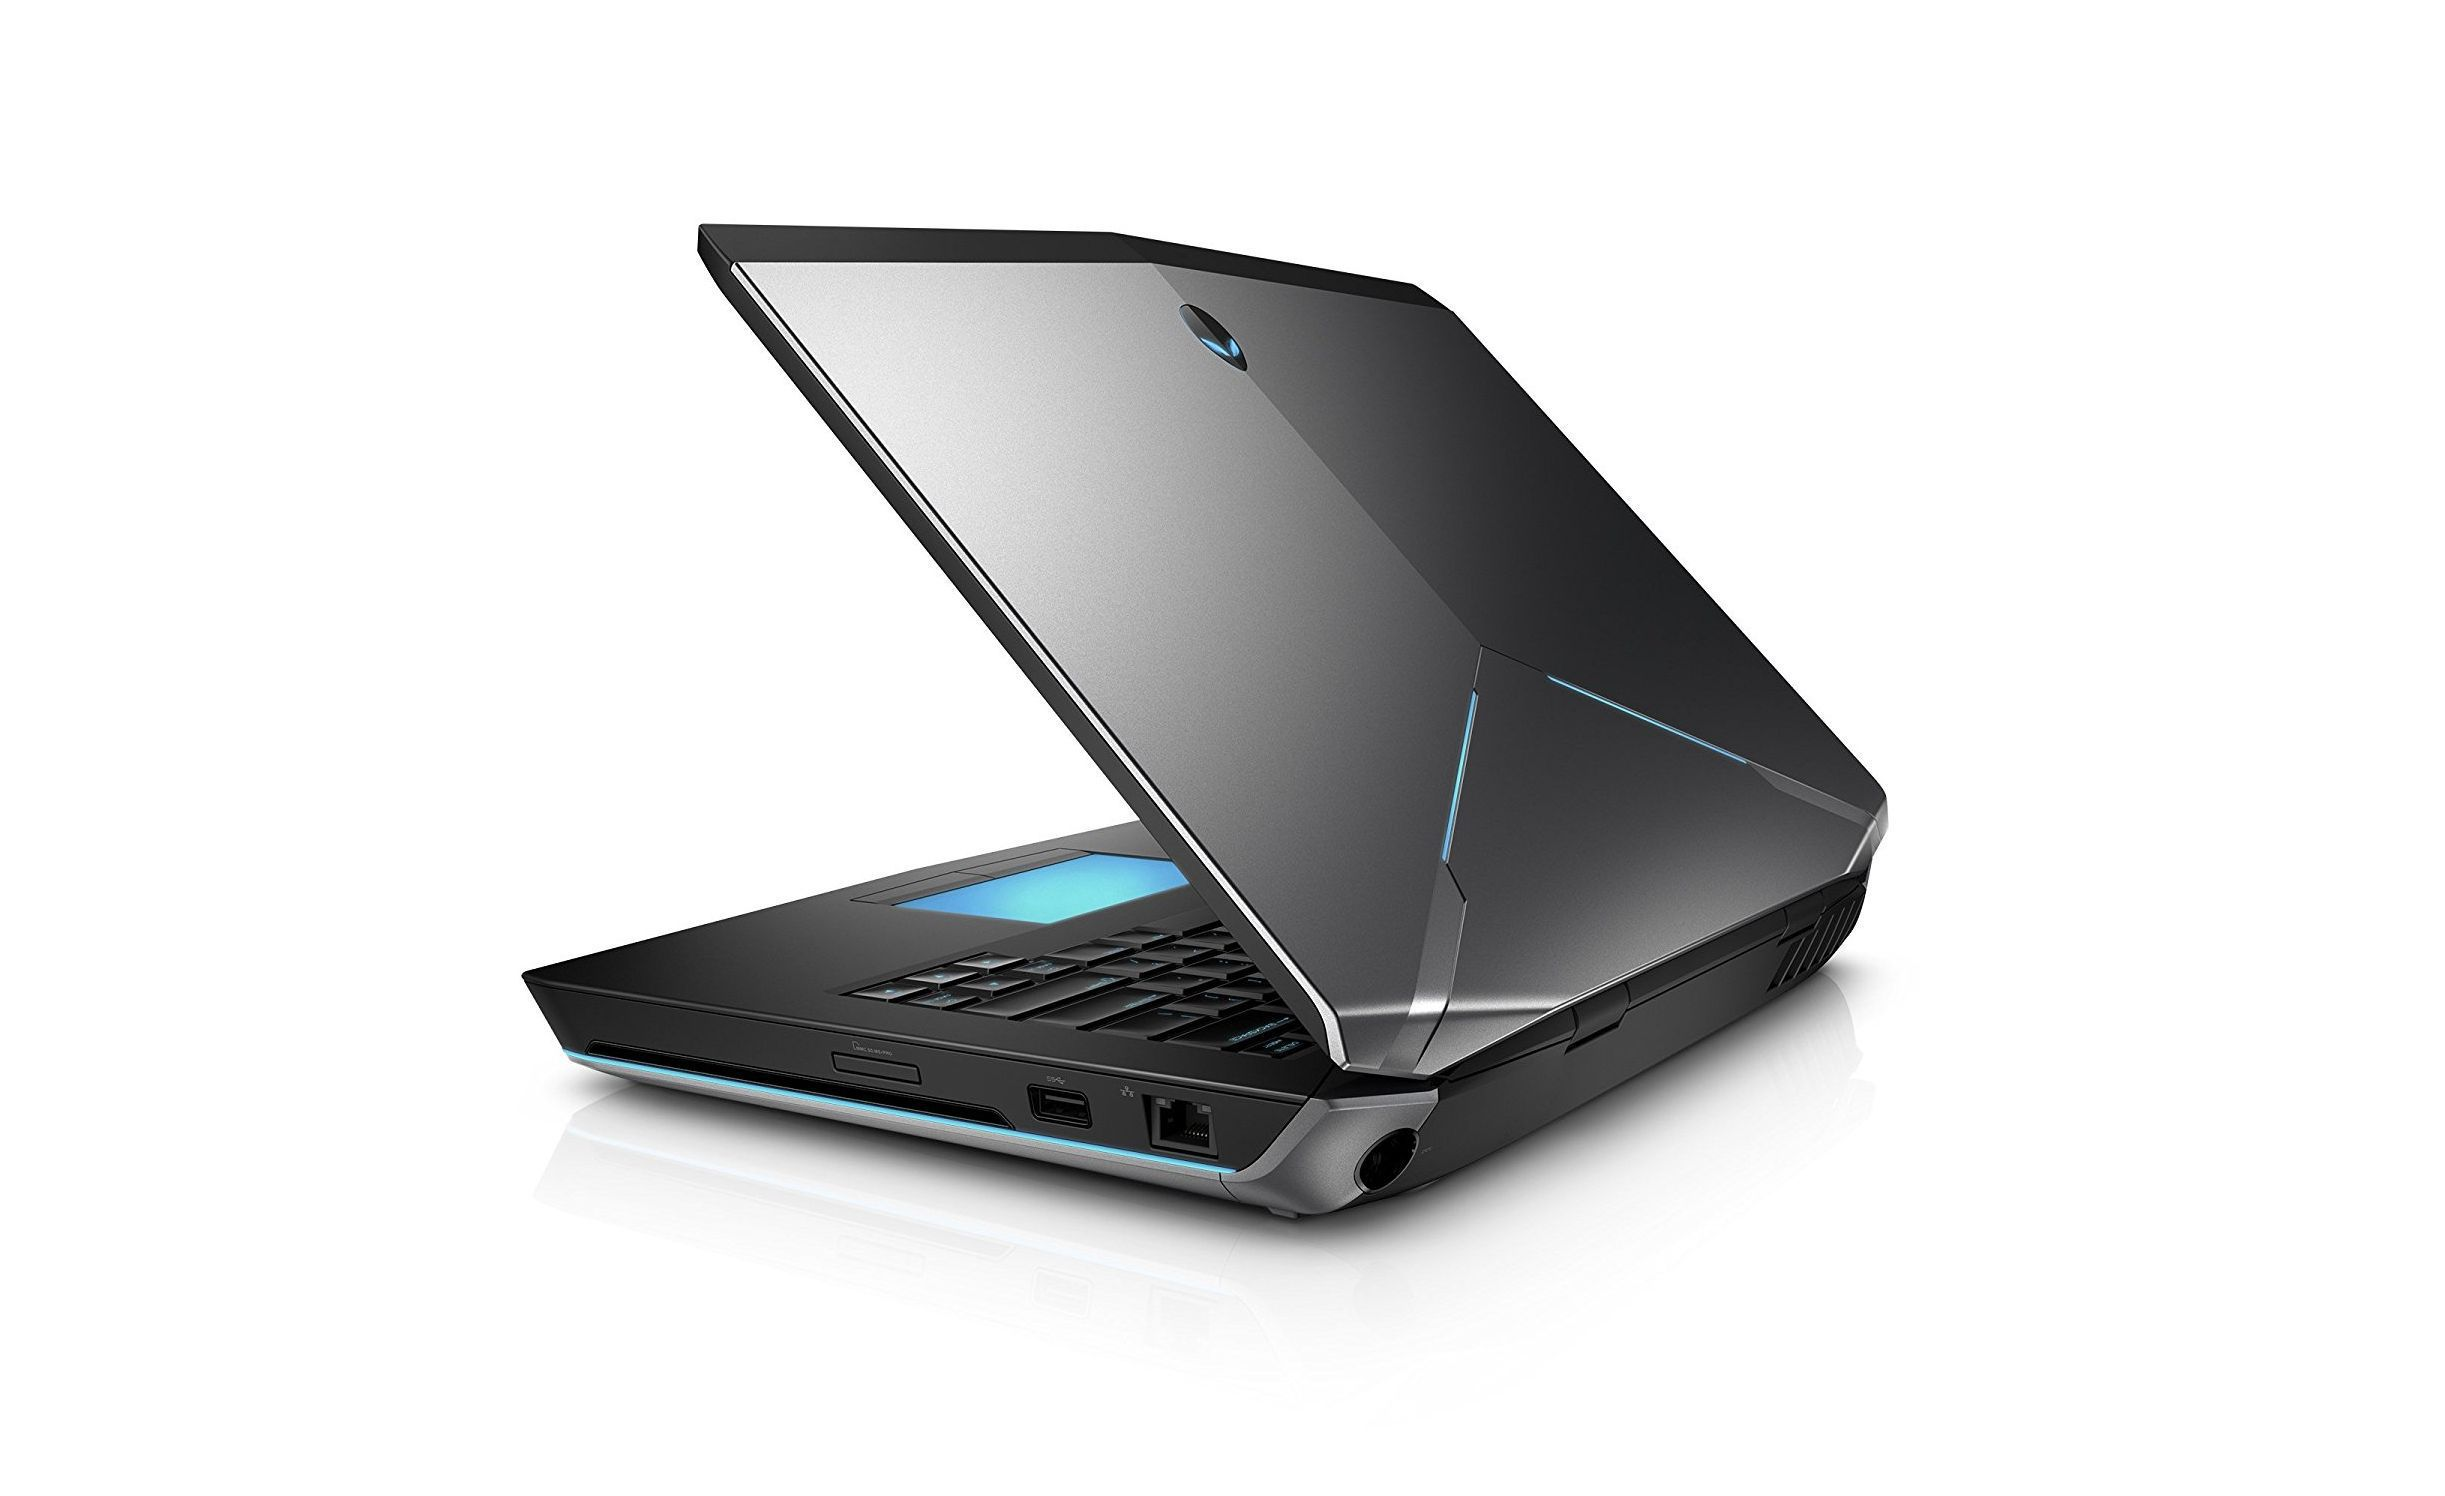 Alienware Laptop Beautiful